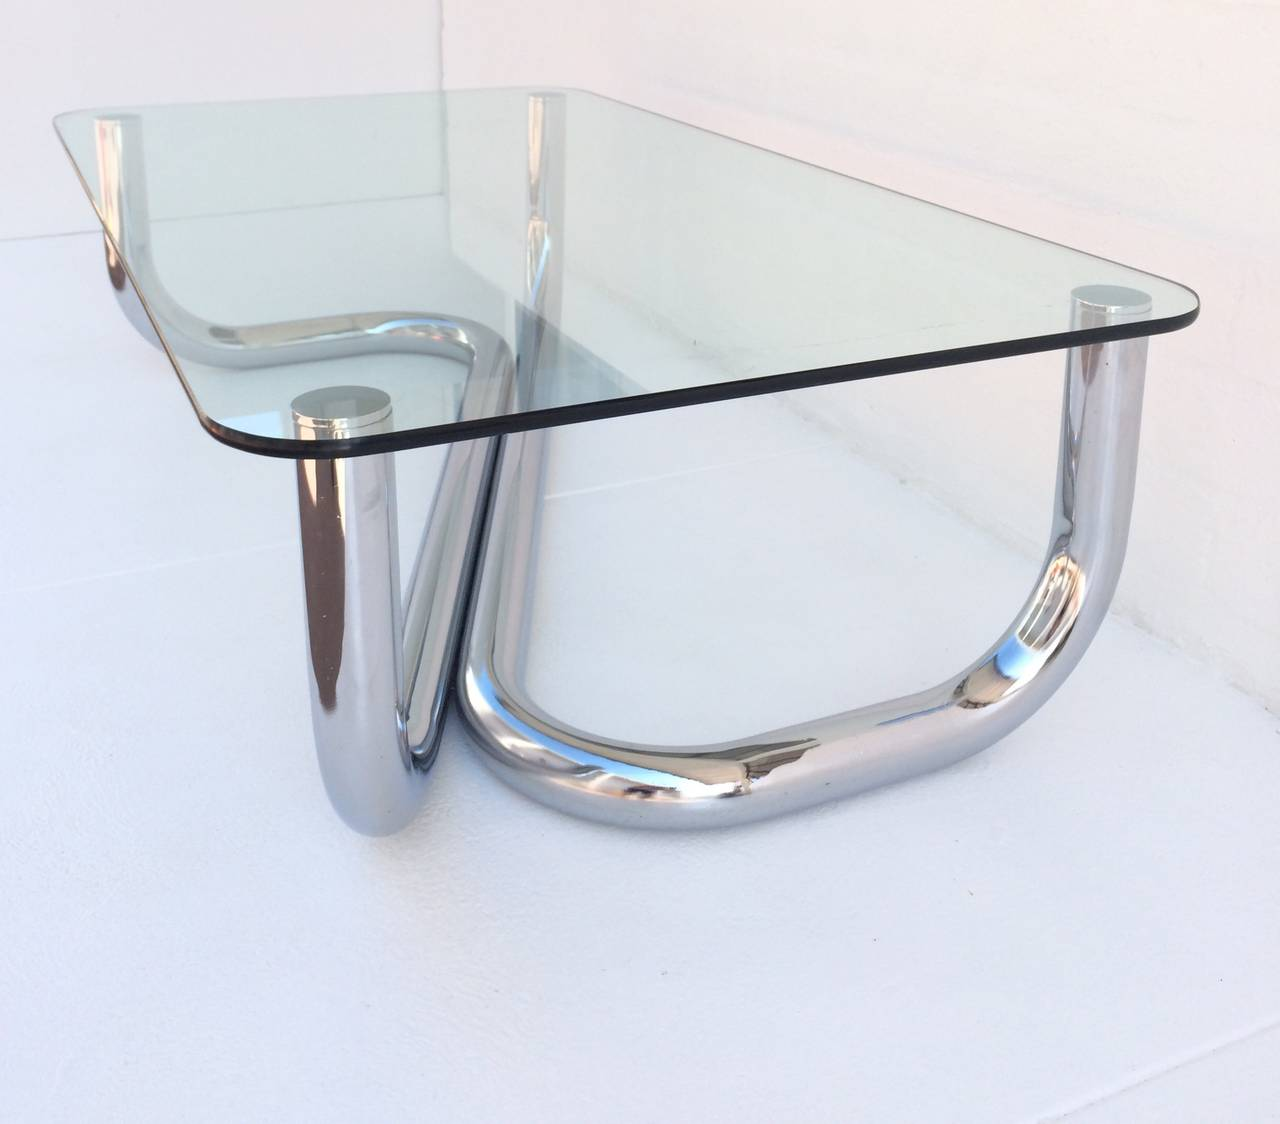 1960s Italian Polished Chrome And Glass Coffee Or Cocktail Table At 1stdibs